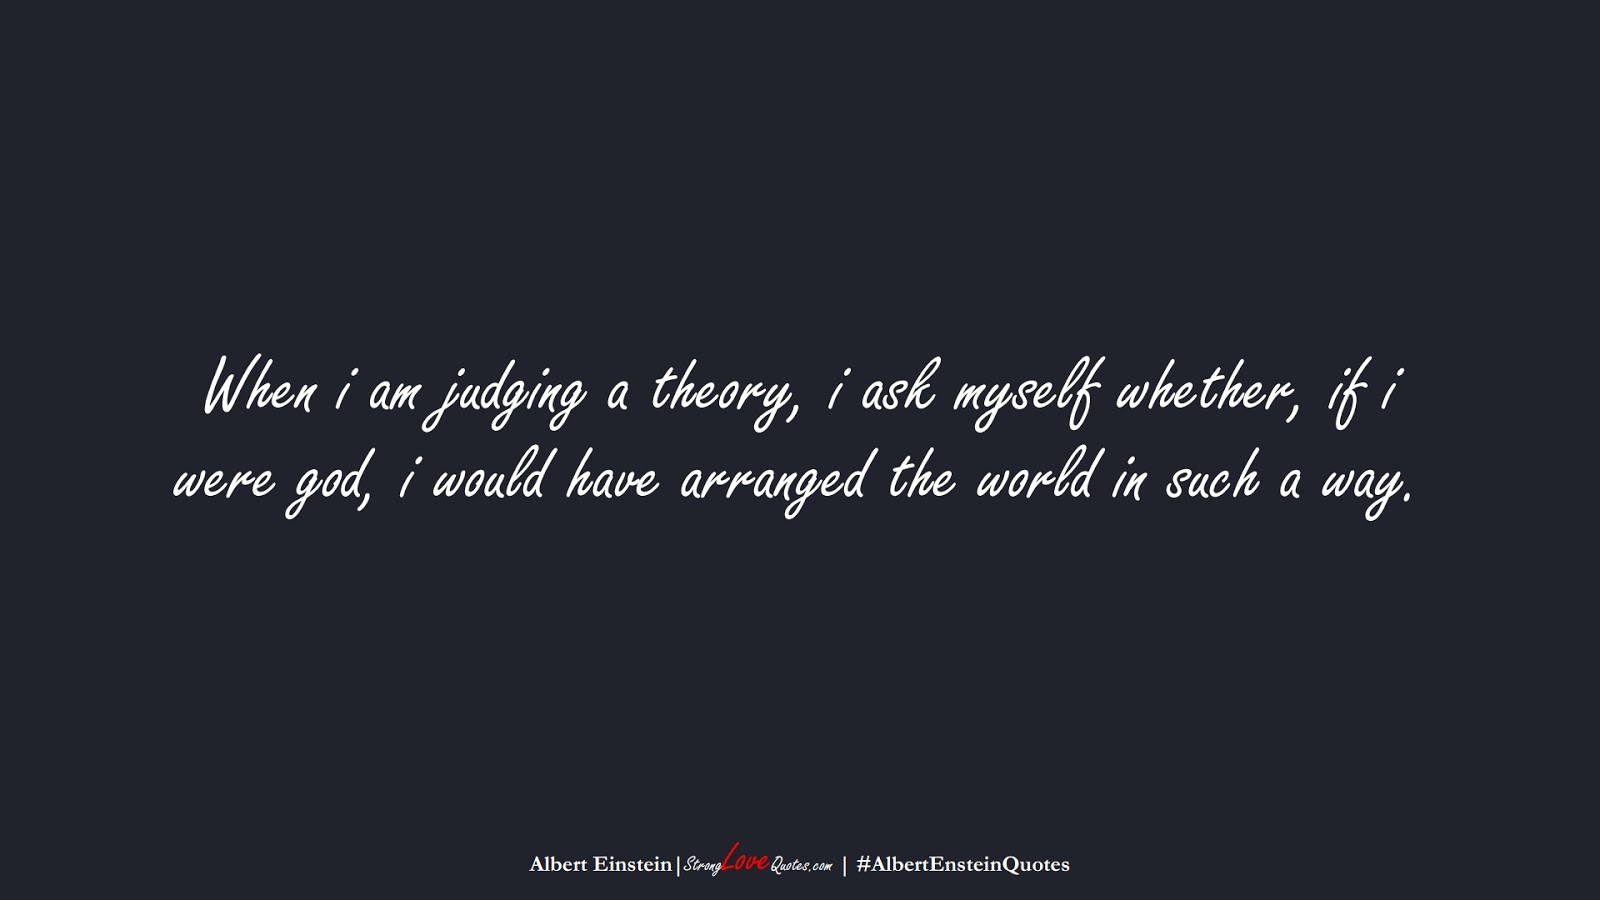 When i am judging a theory, i ask myself whether, if i were god, i would have arranged the world in such a way. (Albert Einstein);  #AlbertEnsteinQuotes